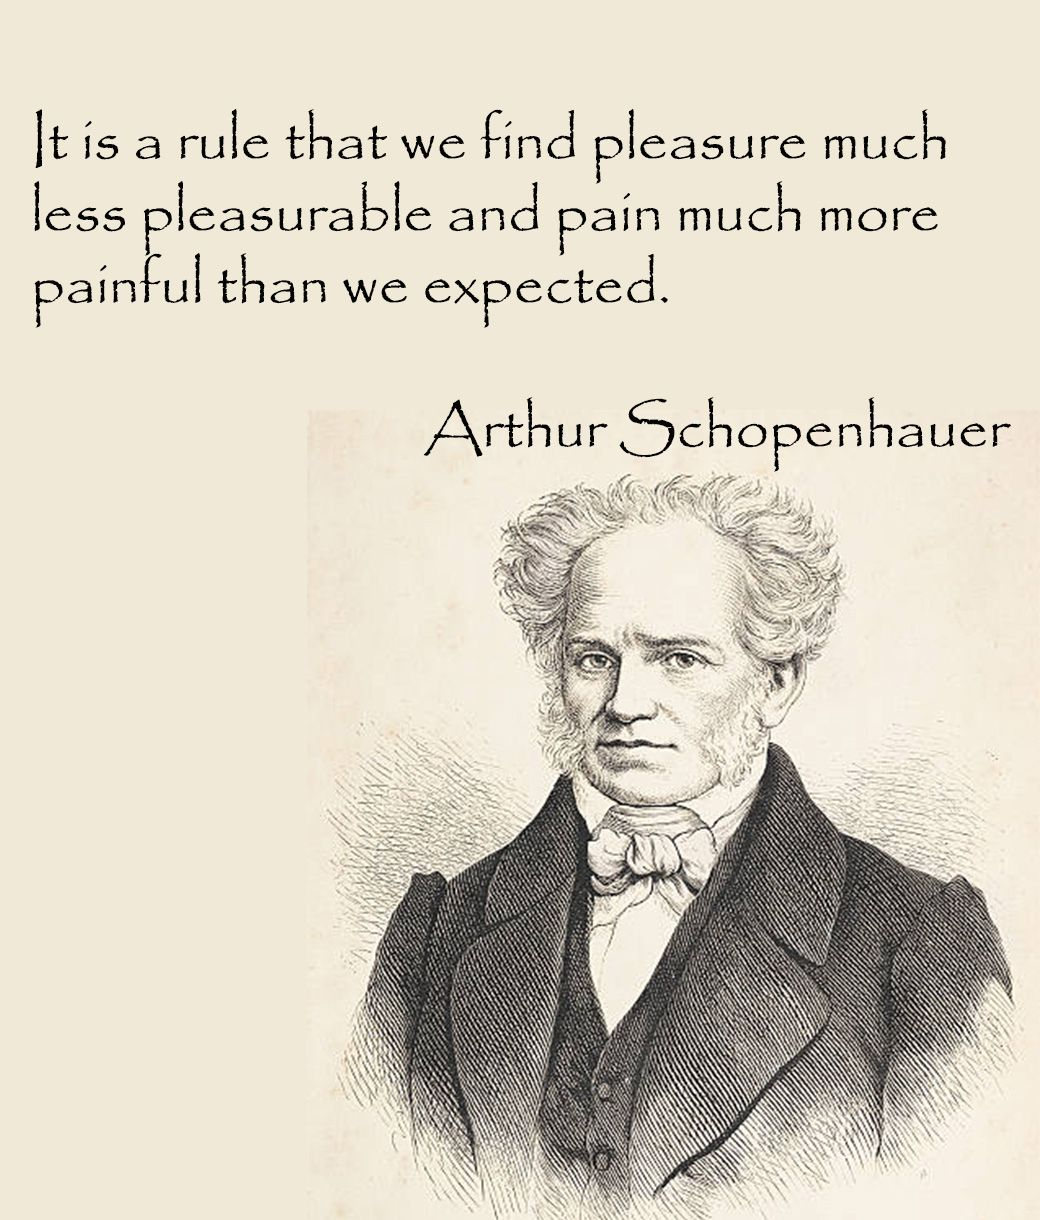 Check out more quotes at our site! Love philosophy quotes ...